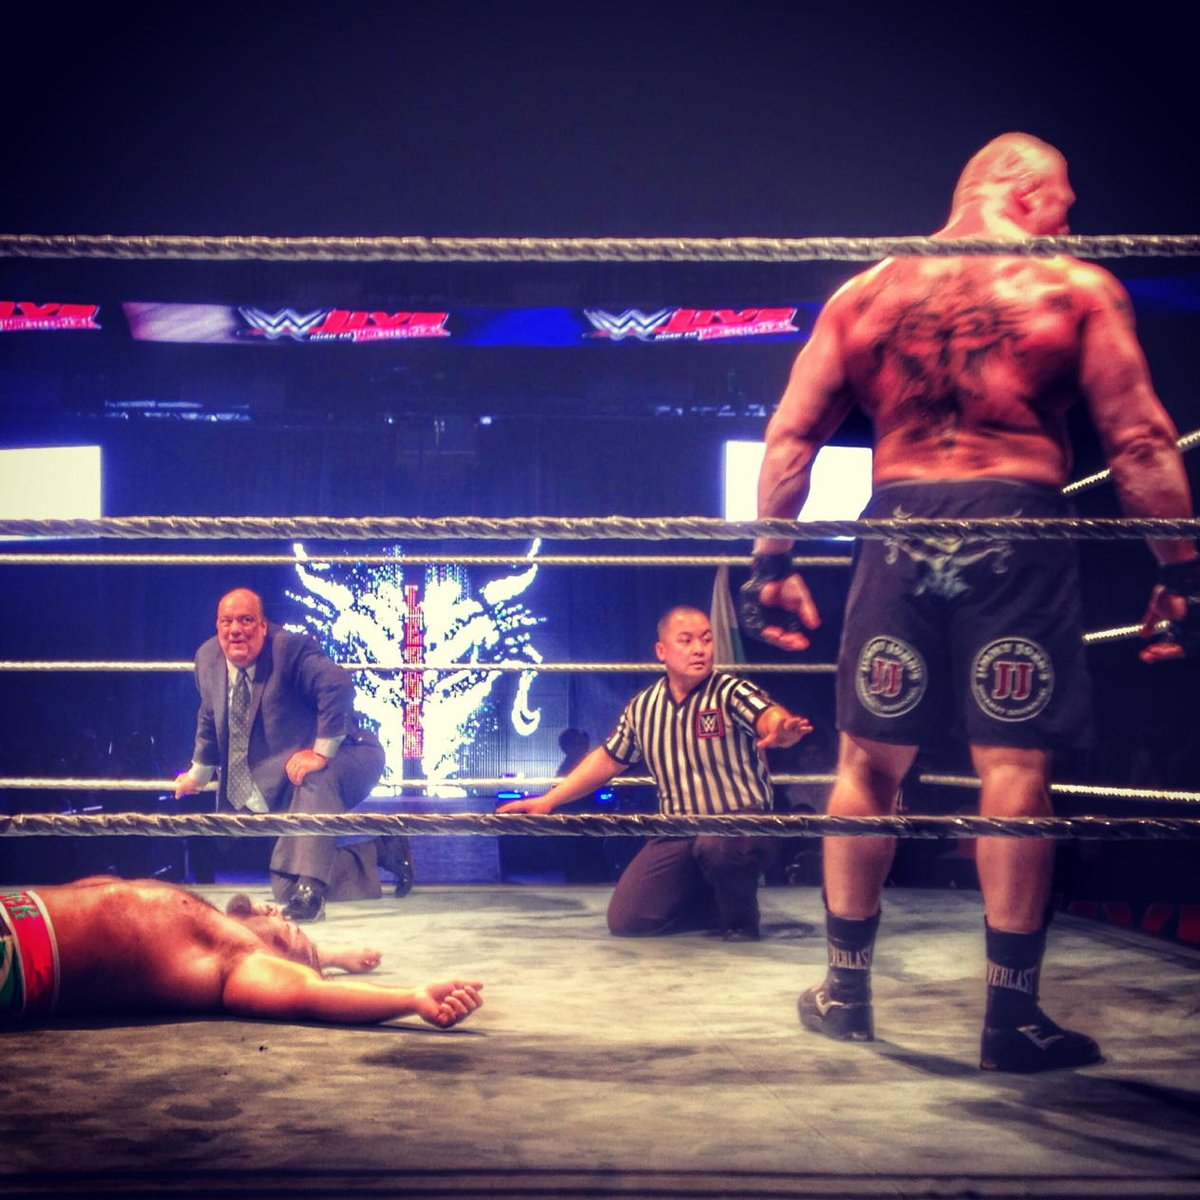 Pretty much sums it up @HeymanHustle #wwesanjose https://t.co/i2pHm8H8B4